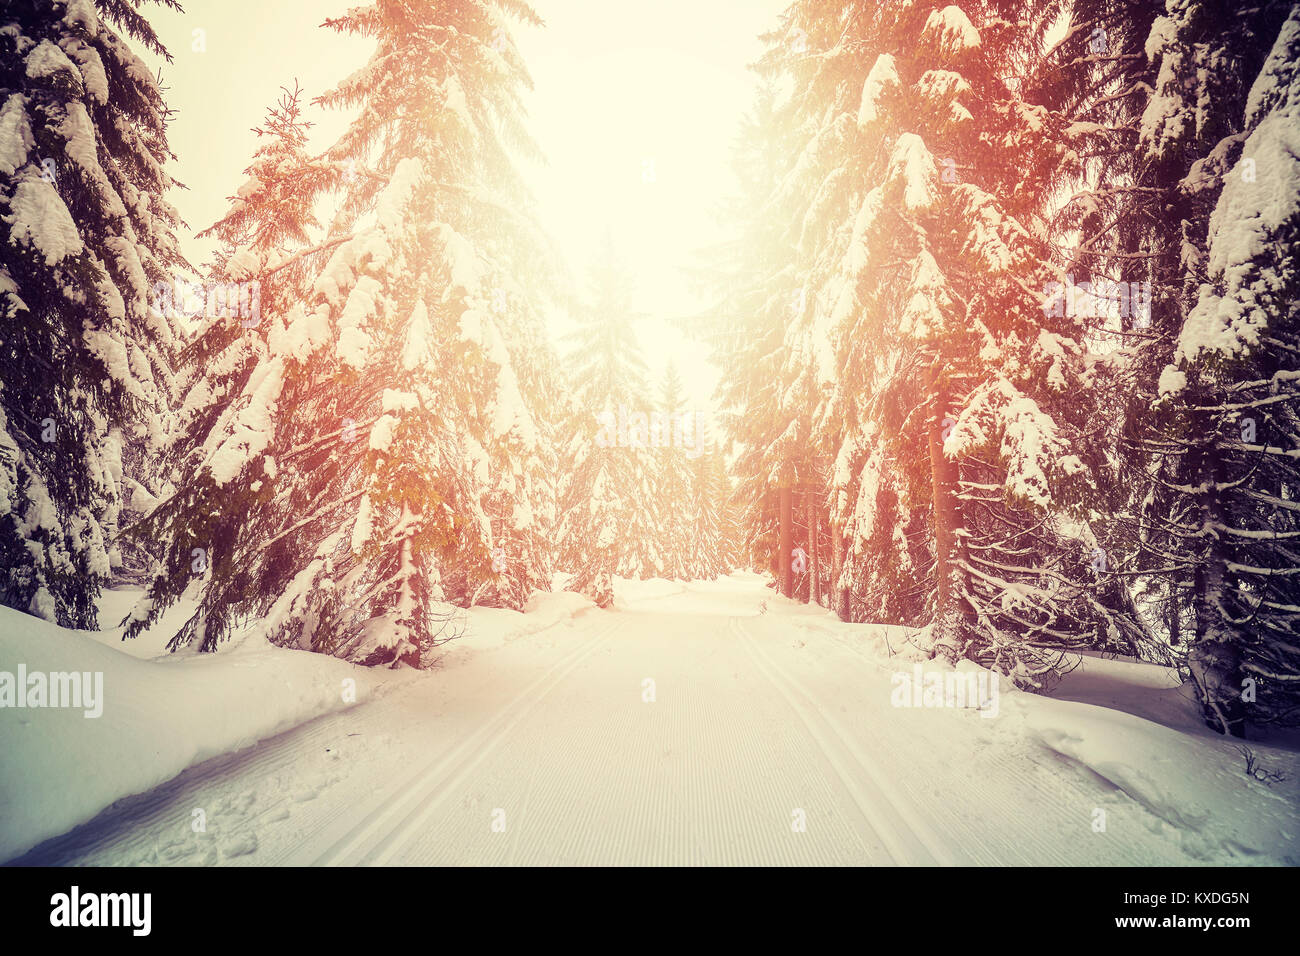 Retro stylized picture of a winter forest with cross country skiing tracks at sunset. - Stock Image